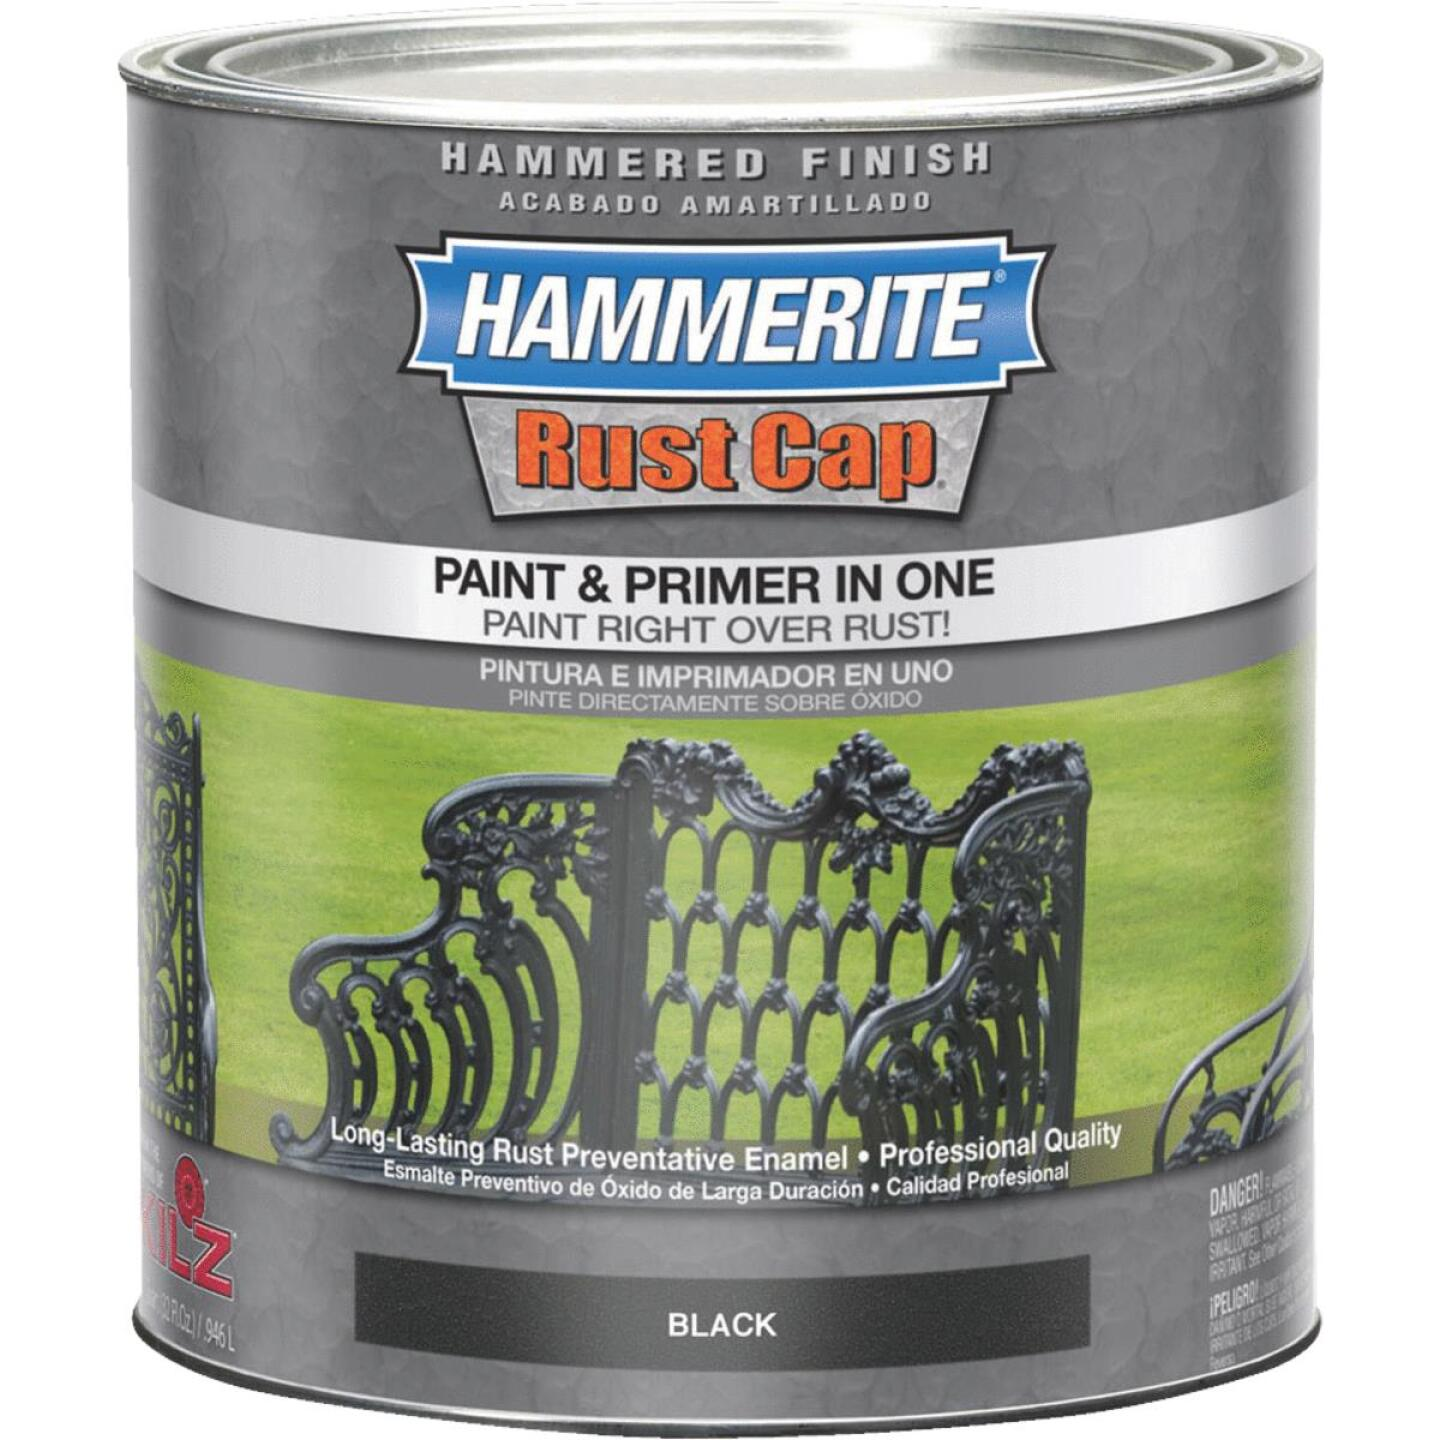 Hammerite Rust Cap Paint & Primer In One Hammered Finish, Black, 1 Qt. Image 1